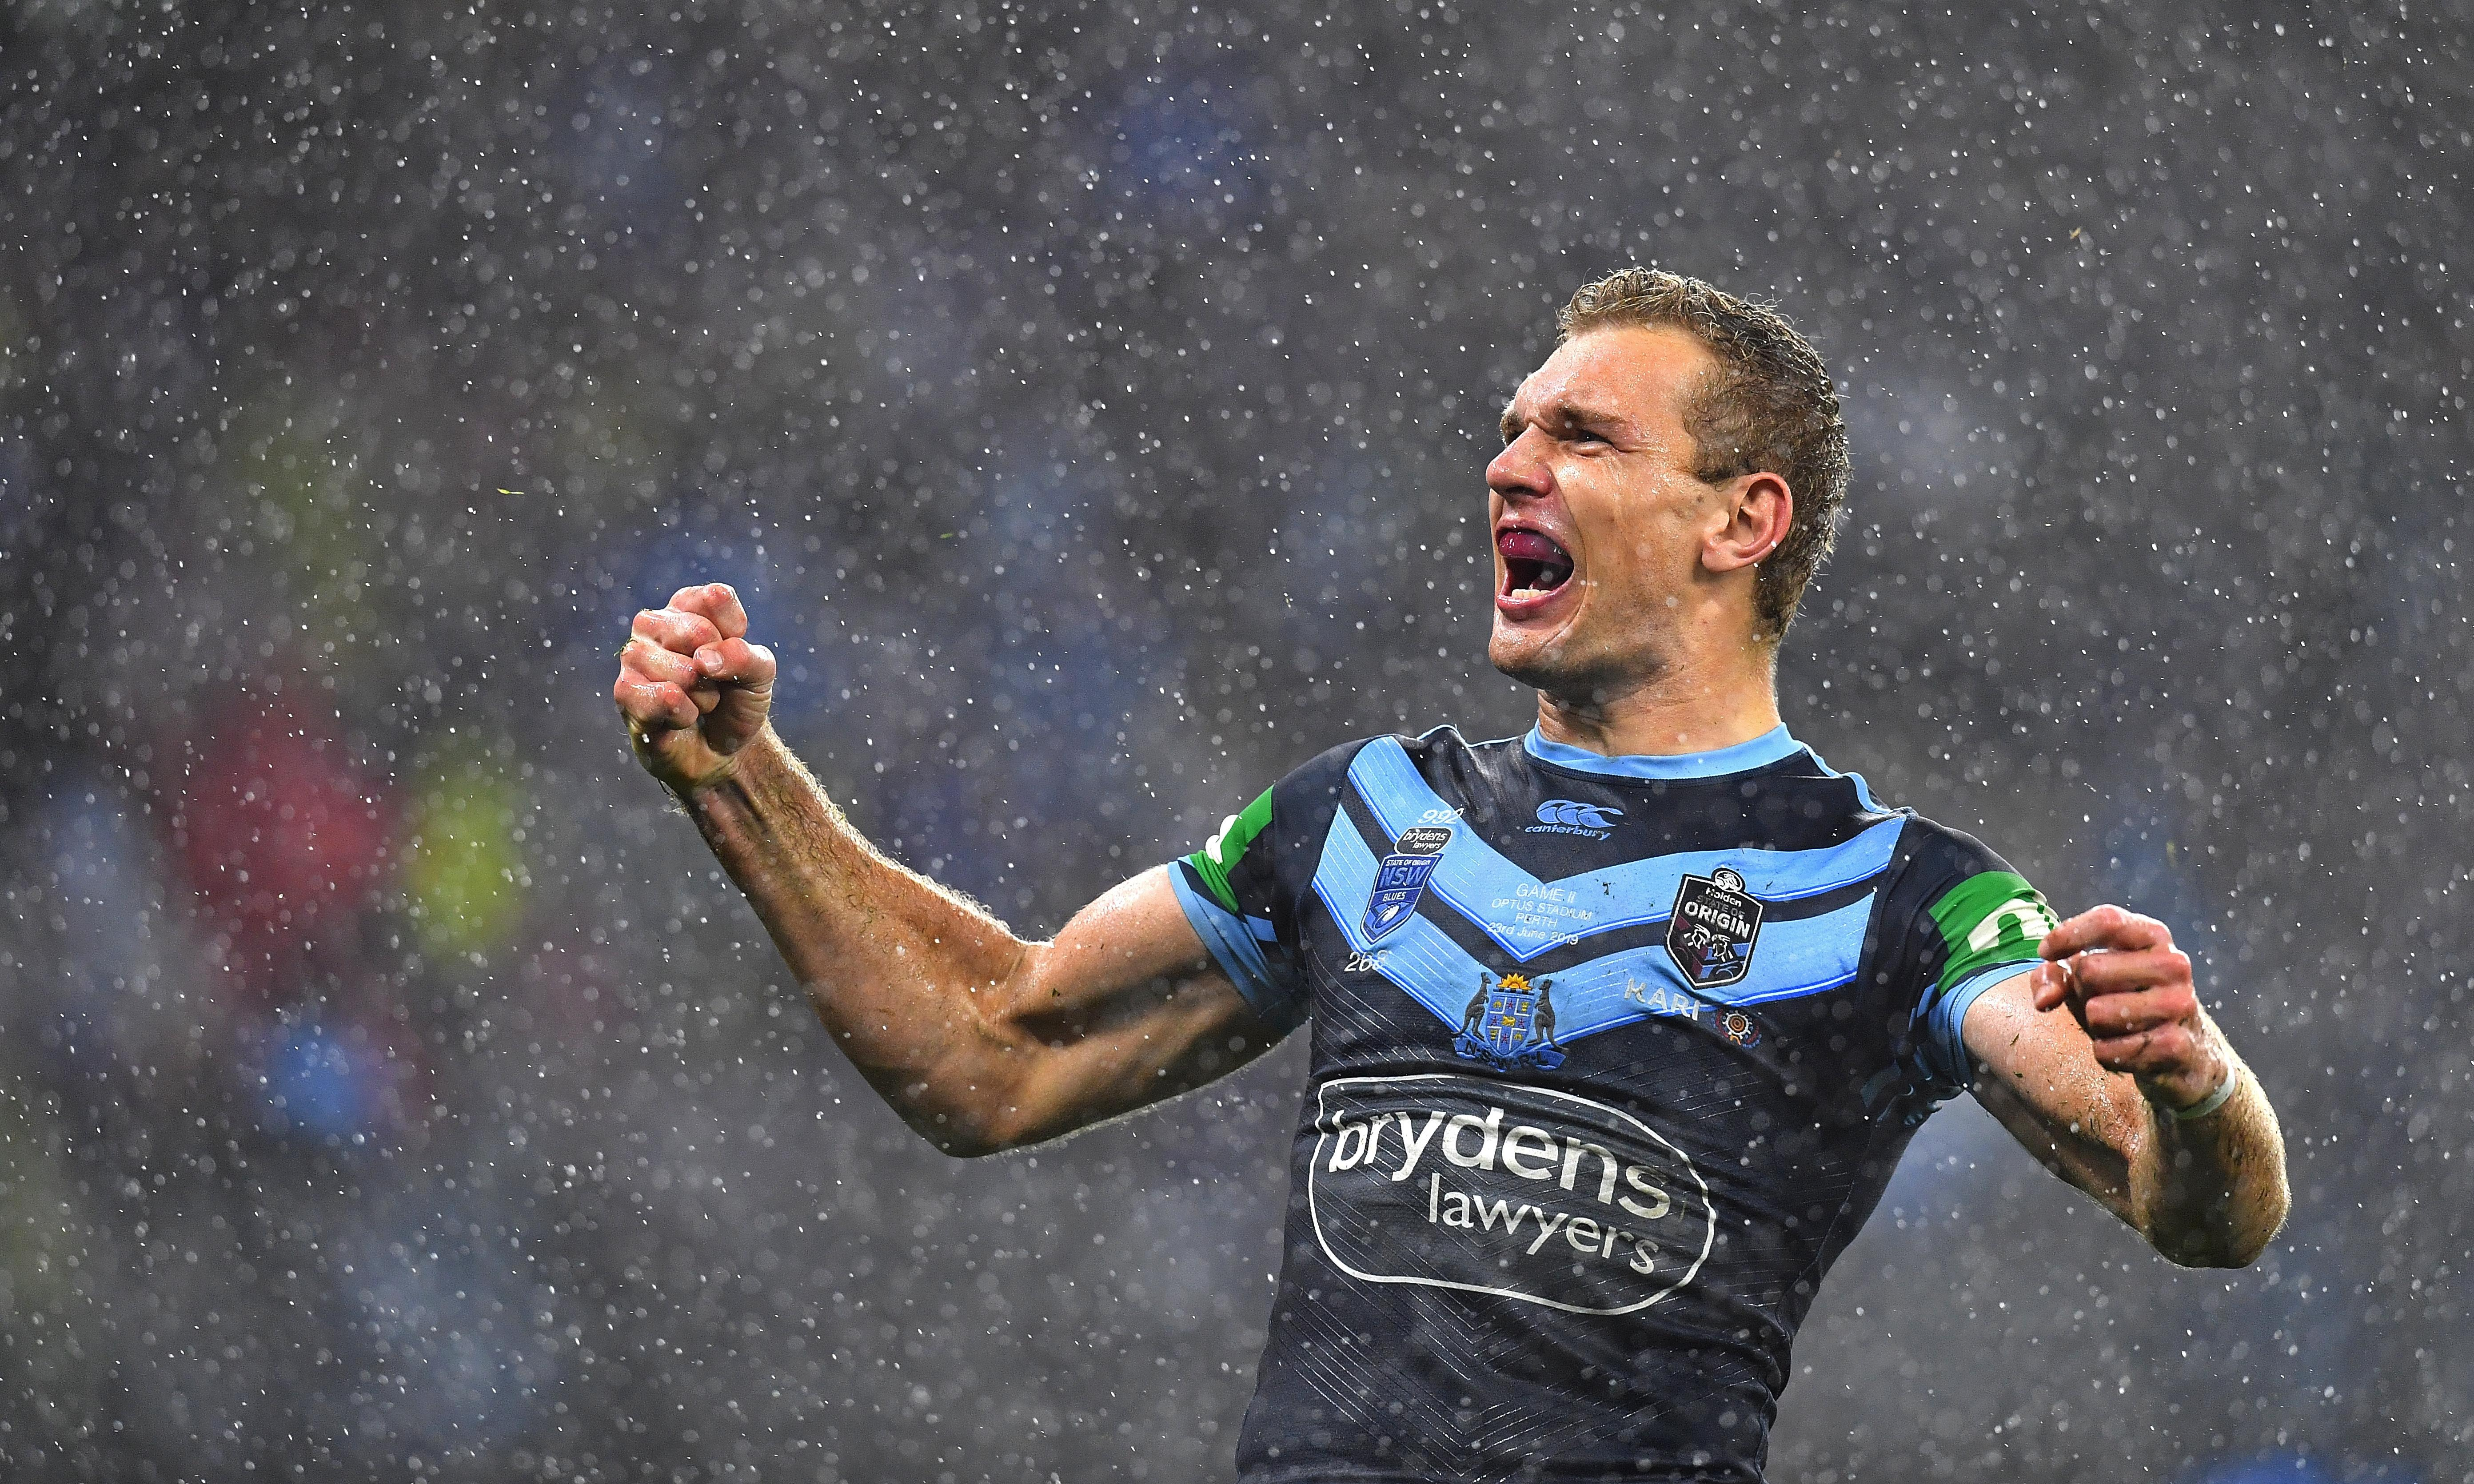 Blues smash Maroons in Perth rain to send series to decider in Sydney